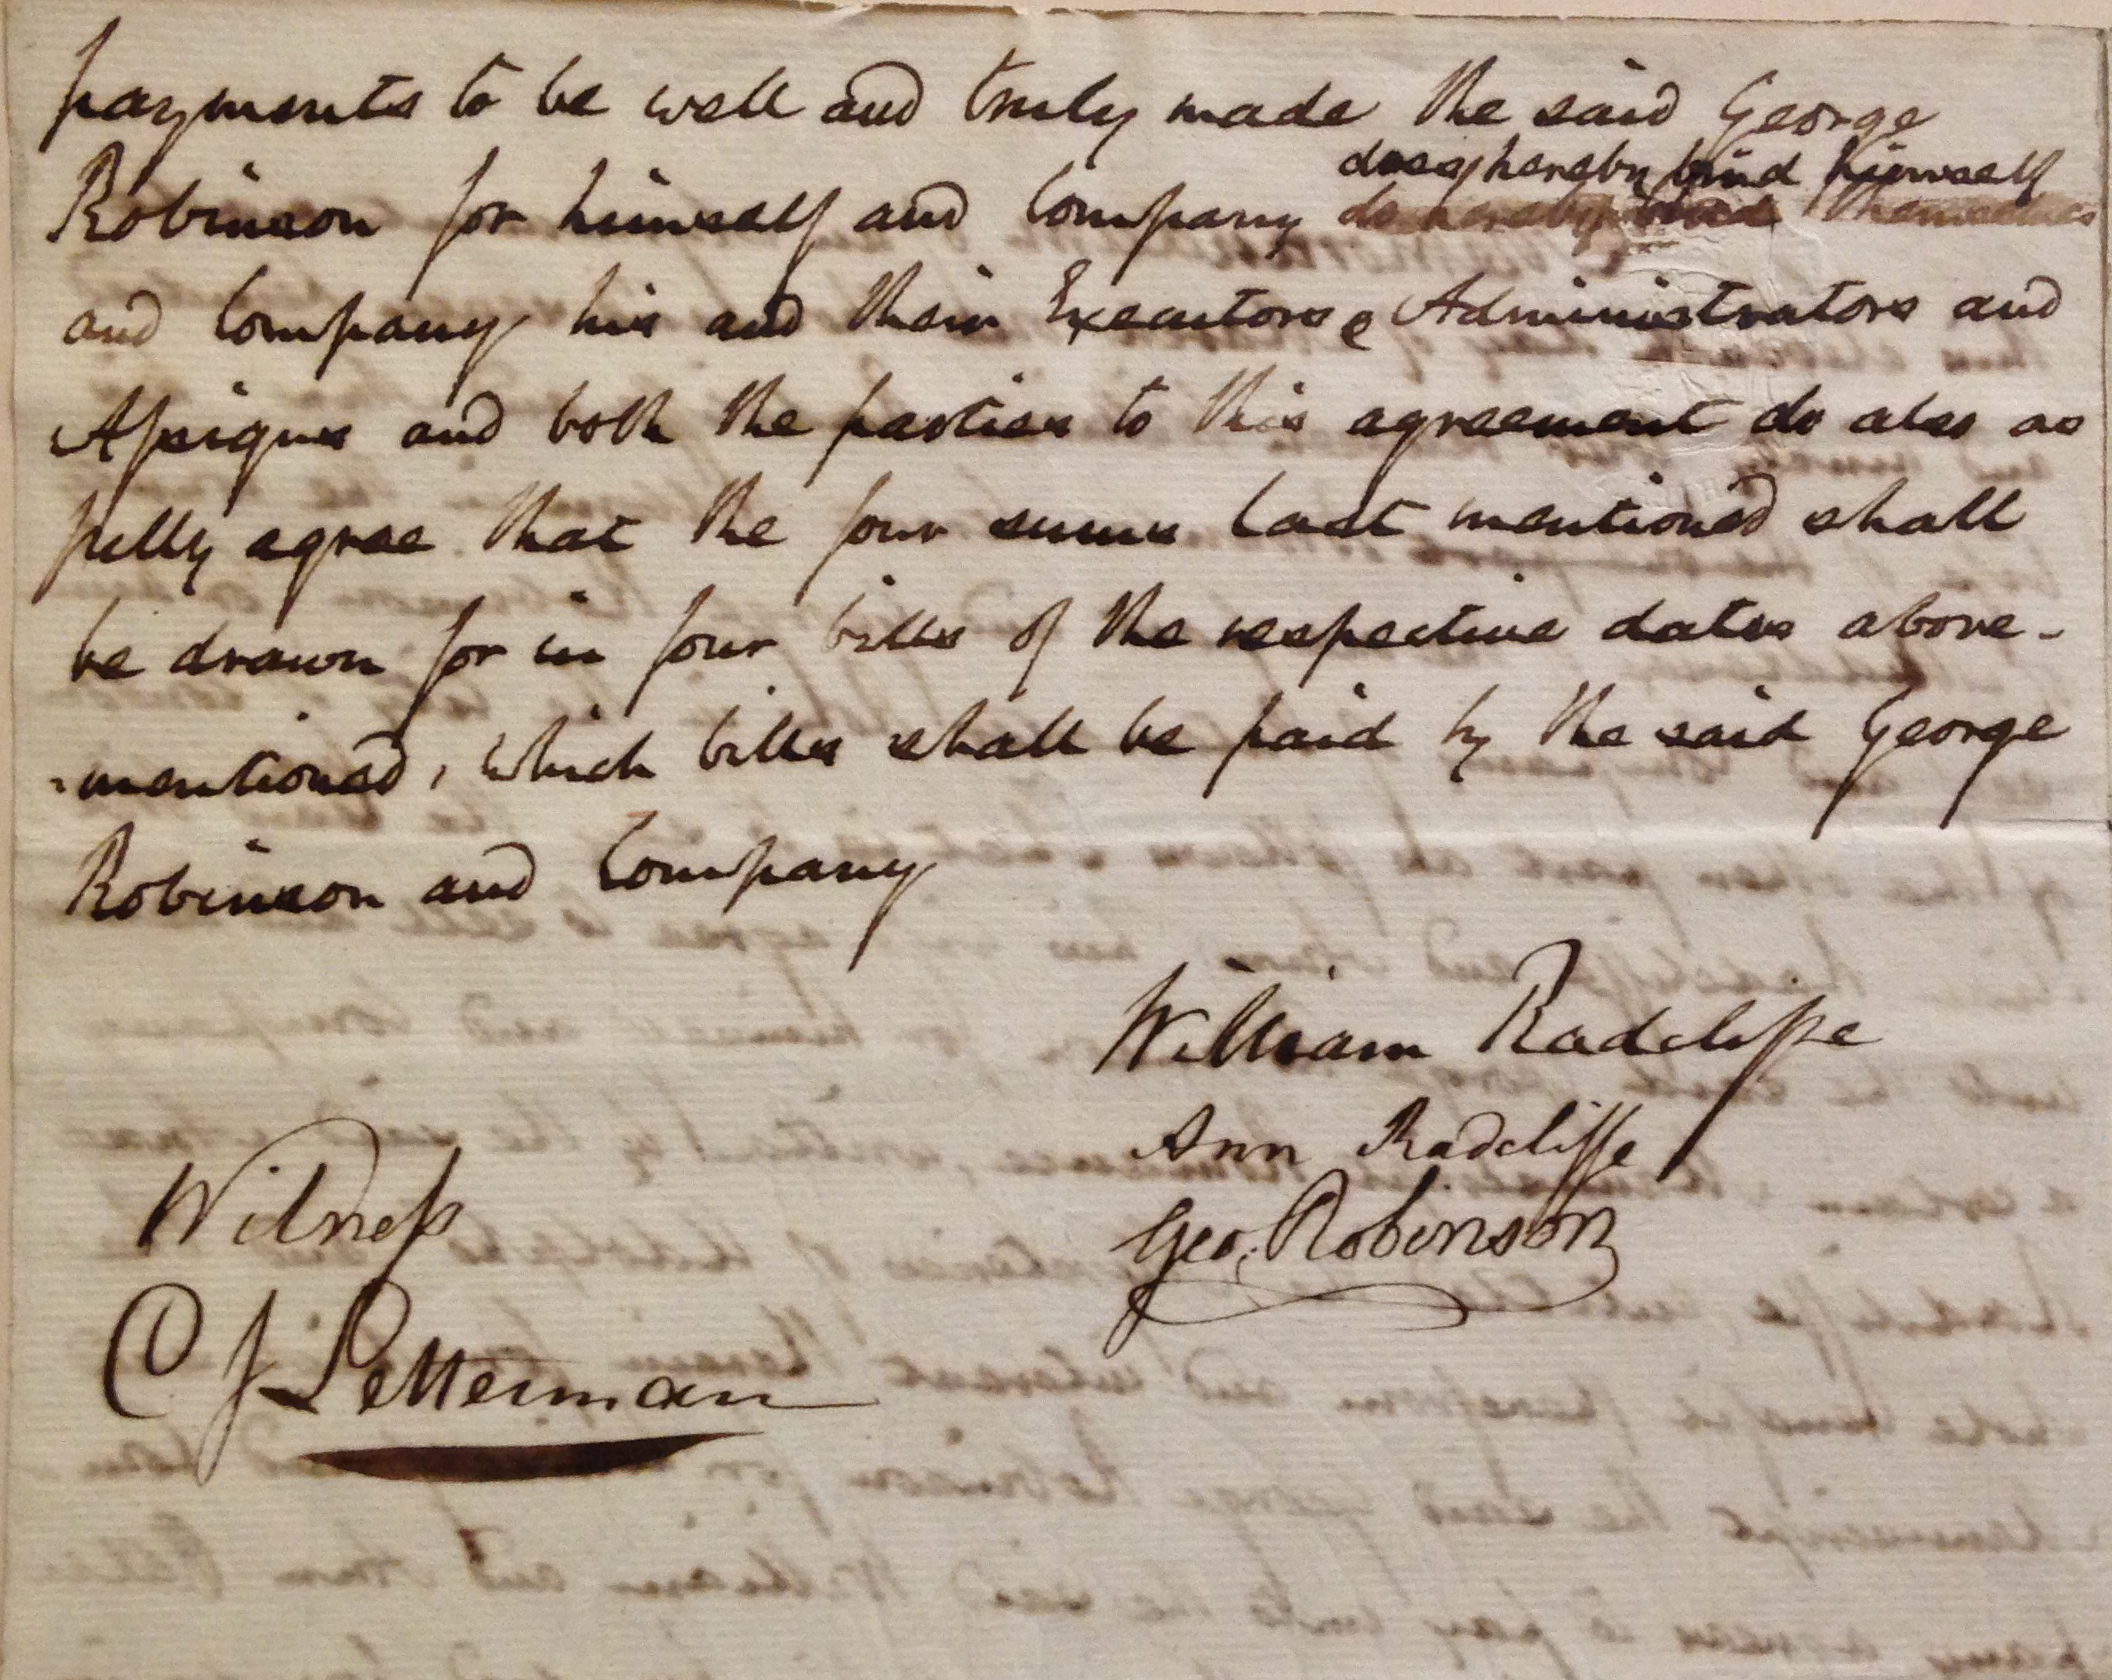 Original manuscript contract, signed by Ann Radcliffe, for her bestselling the Mysteries of Udolpho (London: G.G. and J. Robinson, 1794). Radcliffe's novel commanded the princely sum of 500 British pounds from publisher George Robinson. (MSS 1625)